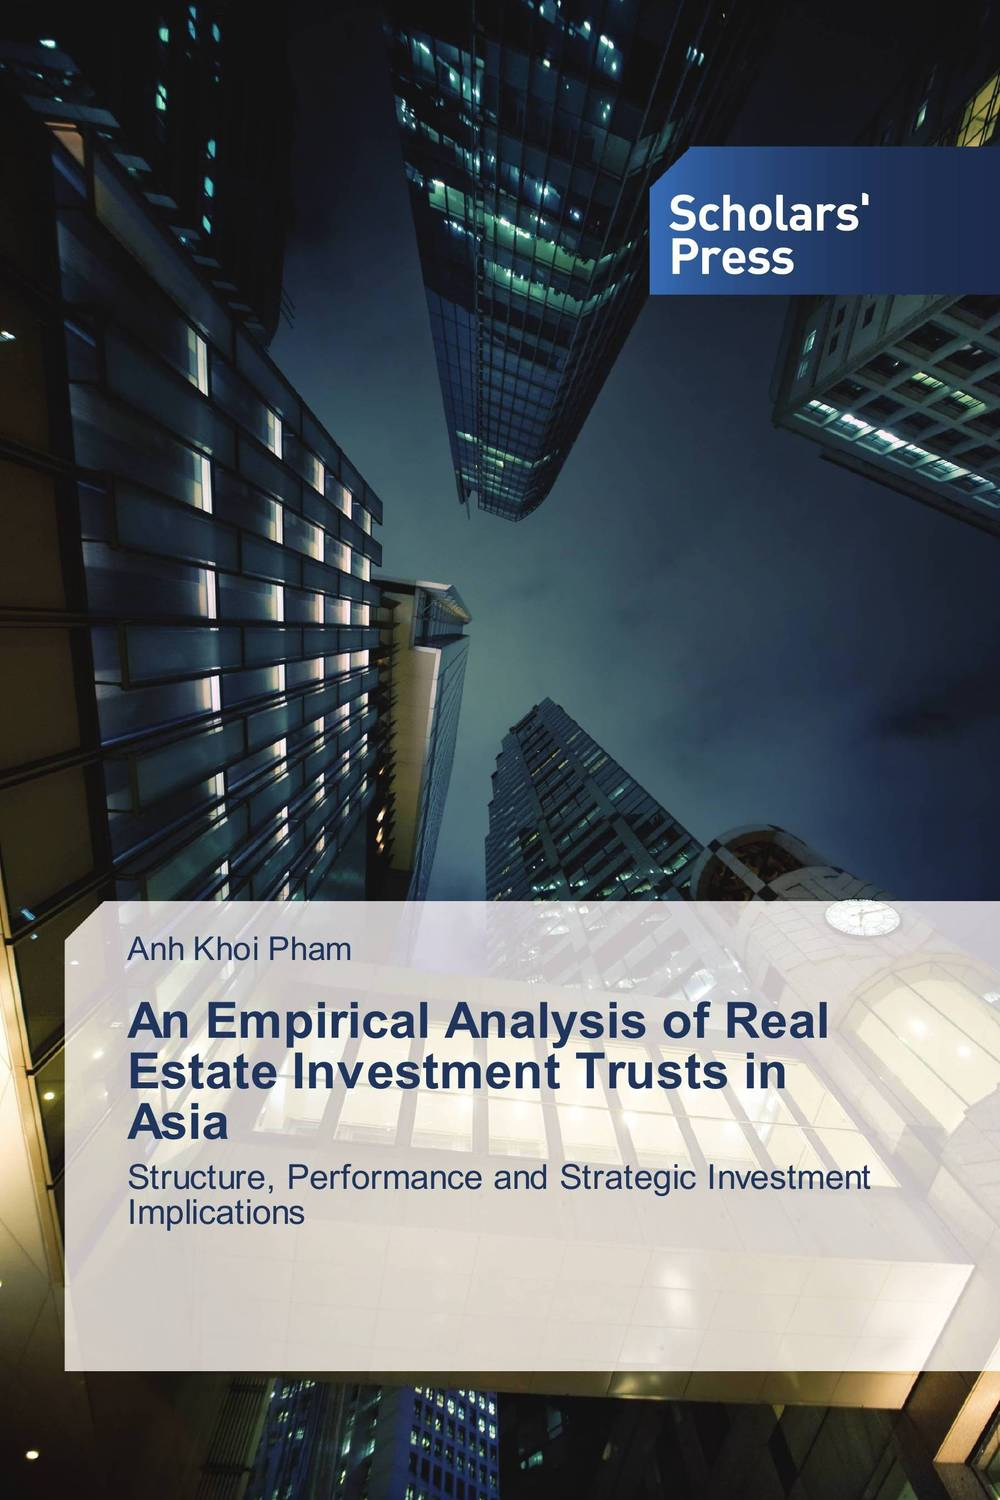 An Empirical Analysis of Real Estate Investment Trusts in Asia smart ways of making money in real estate